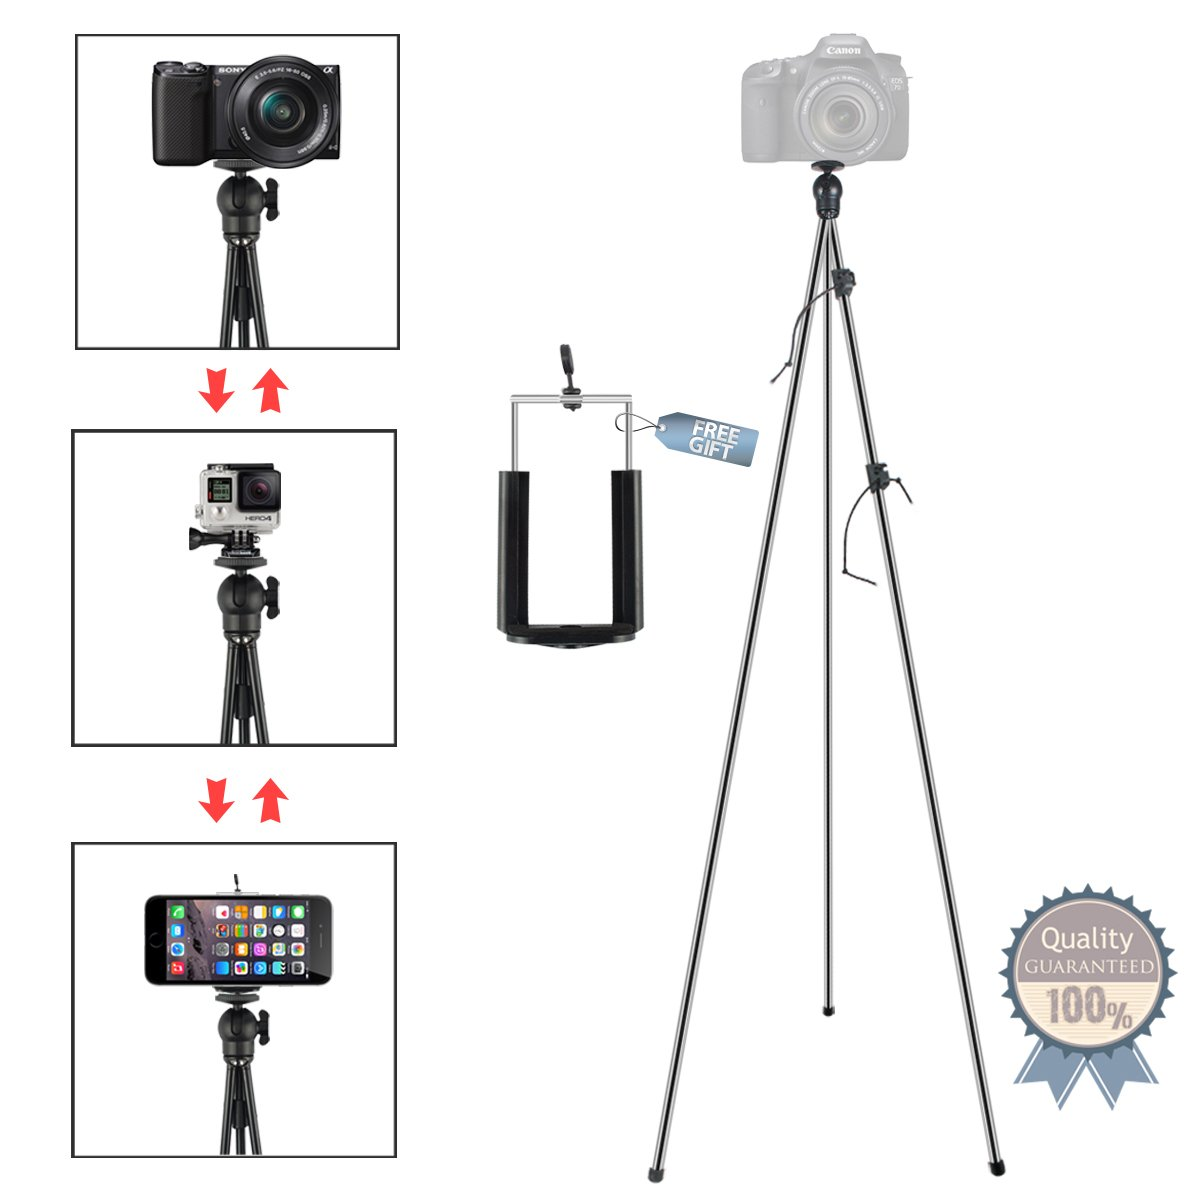 Phone Camera Stand Tripod, ZIPPOD 45 Inch Flexible And Compact Camera Tripod 10 Oz Lightweight Travel Tripod With Phone Tripod Mount Adapter For Iphone 6, Smartphone And DSLR Camera With Carry Bag by Tonhie